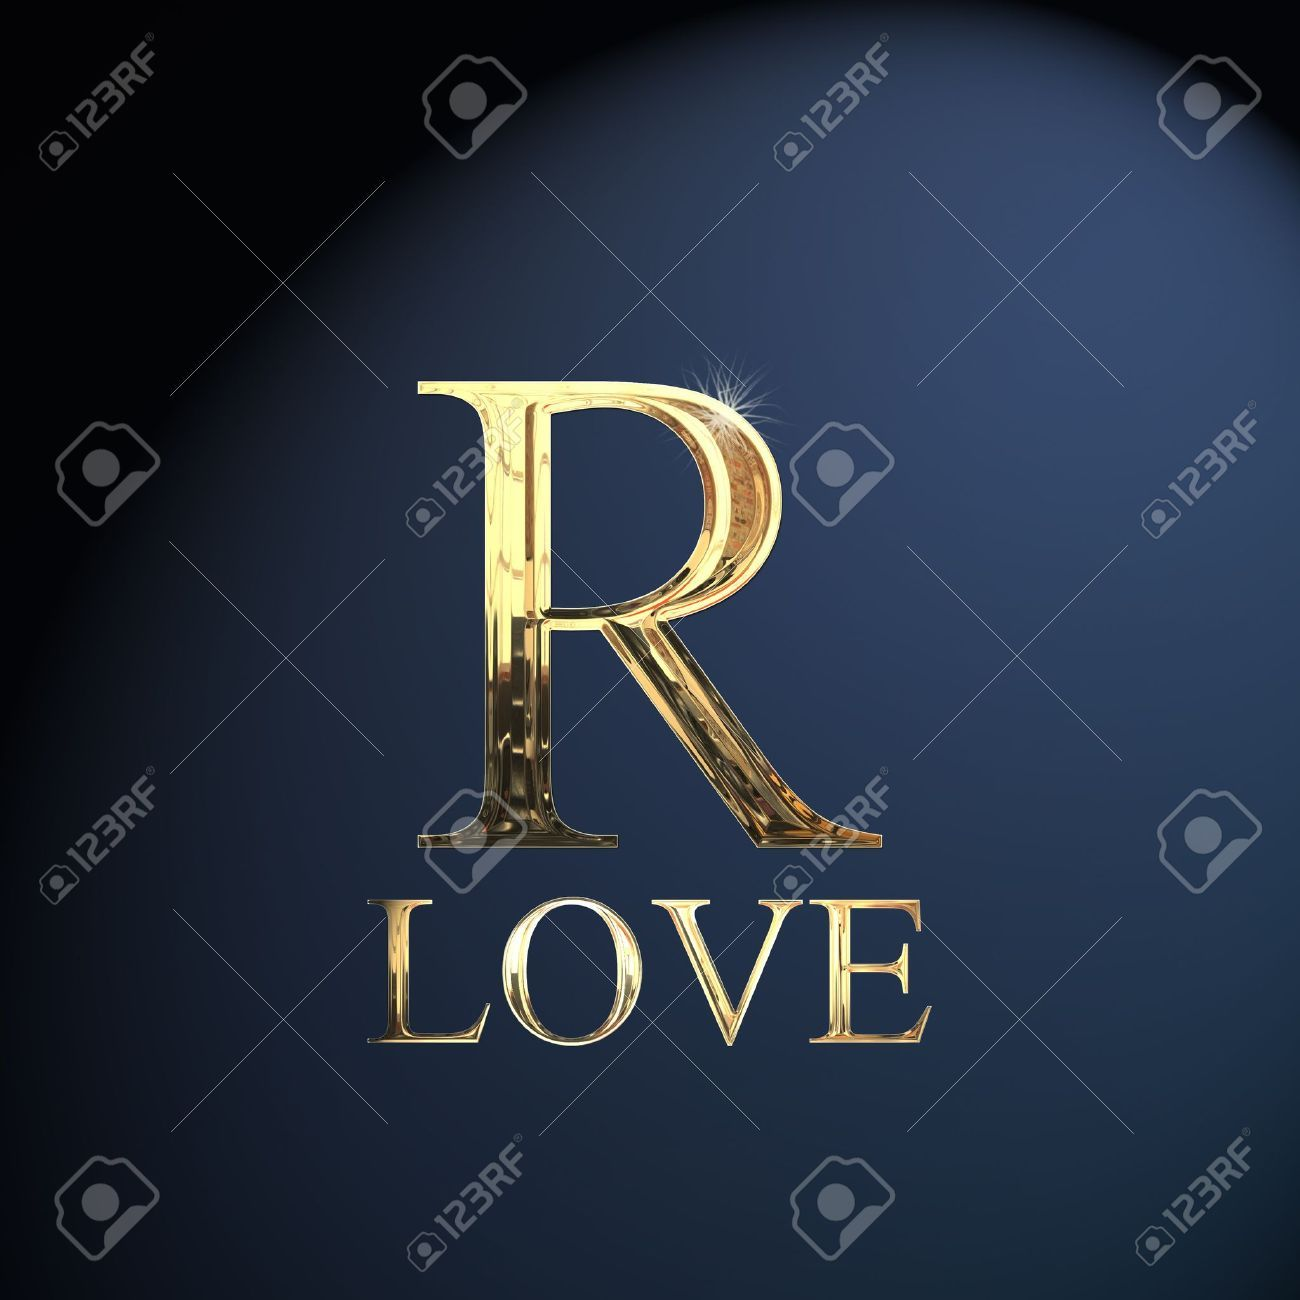 Rs Love Wallpaper Free Download Epic Car Wallpapers 2018